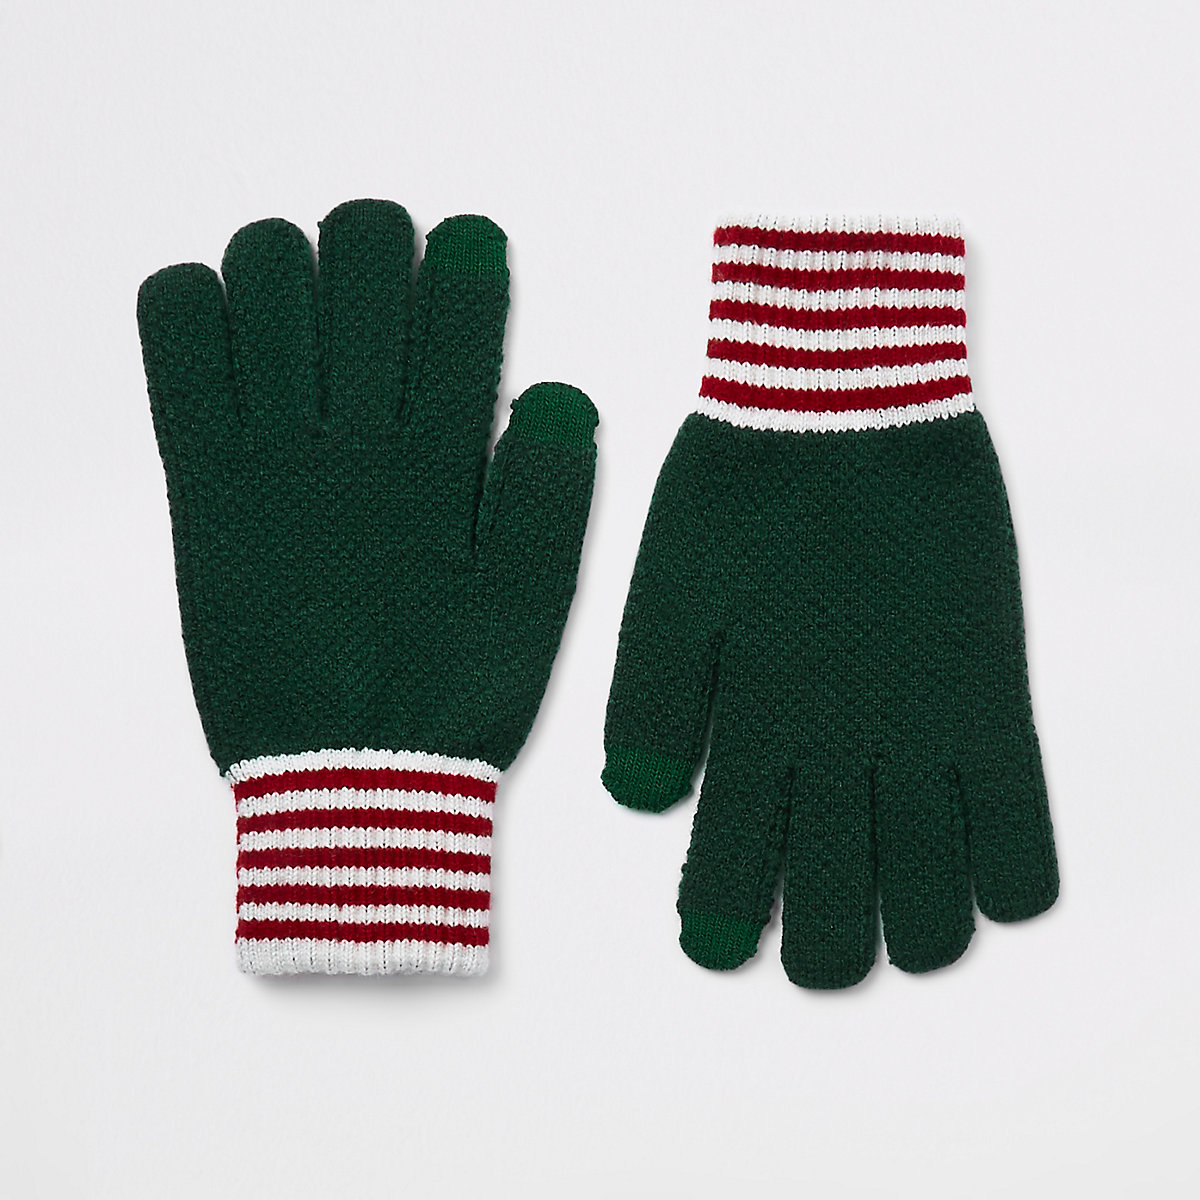 Green knitted cuffed gloves